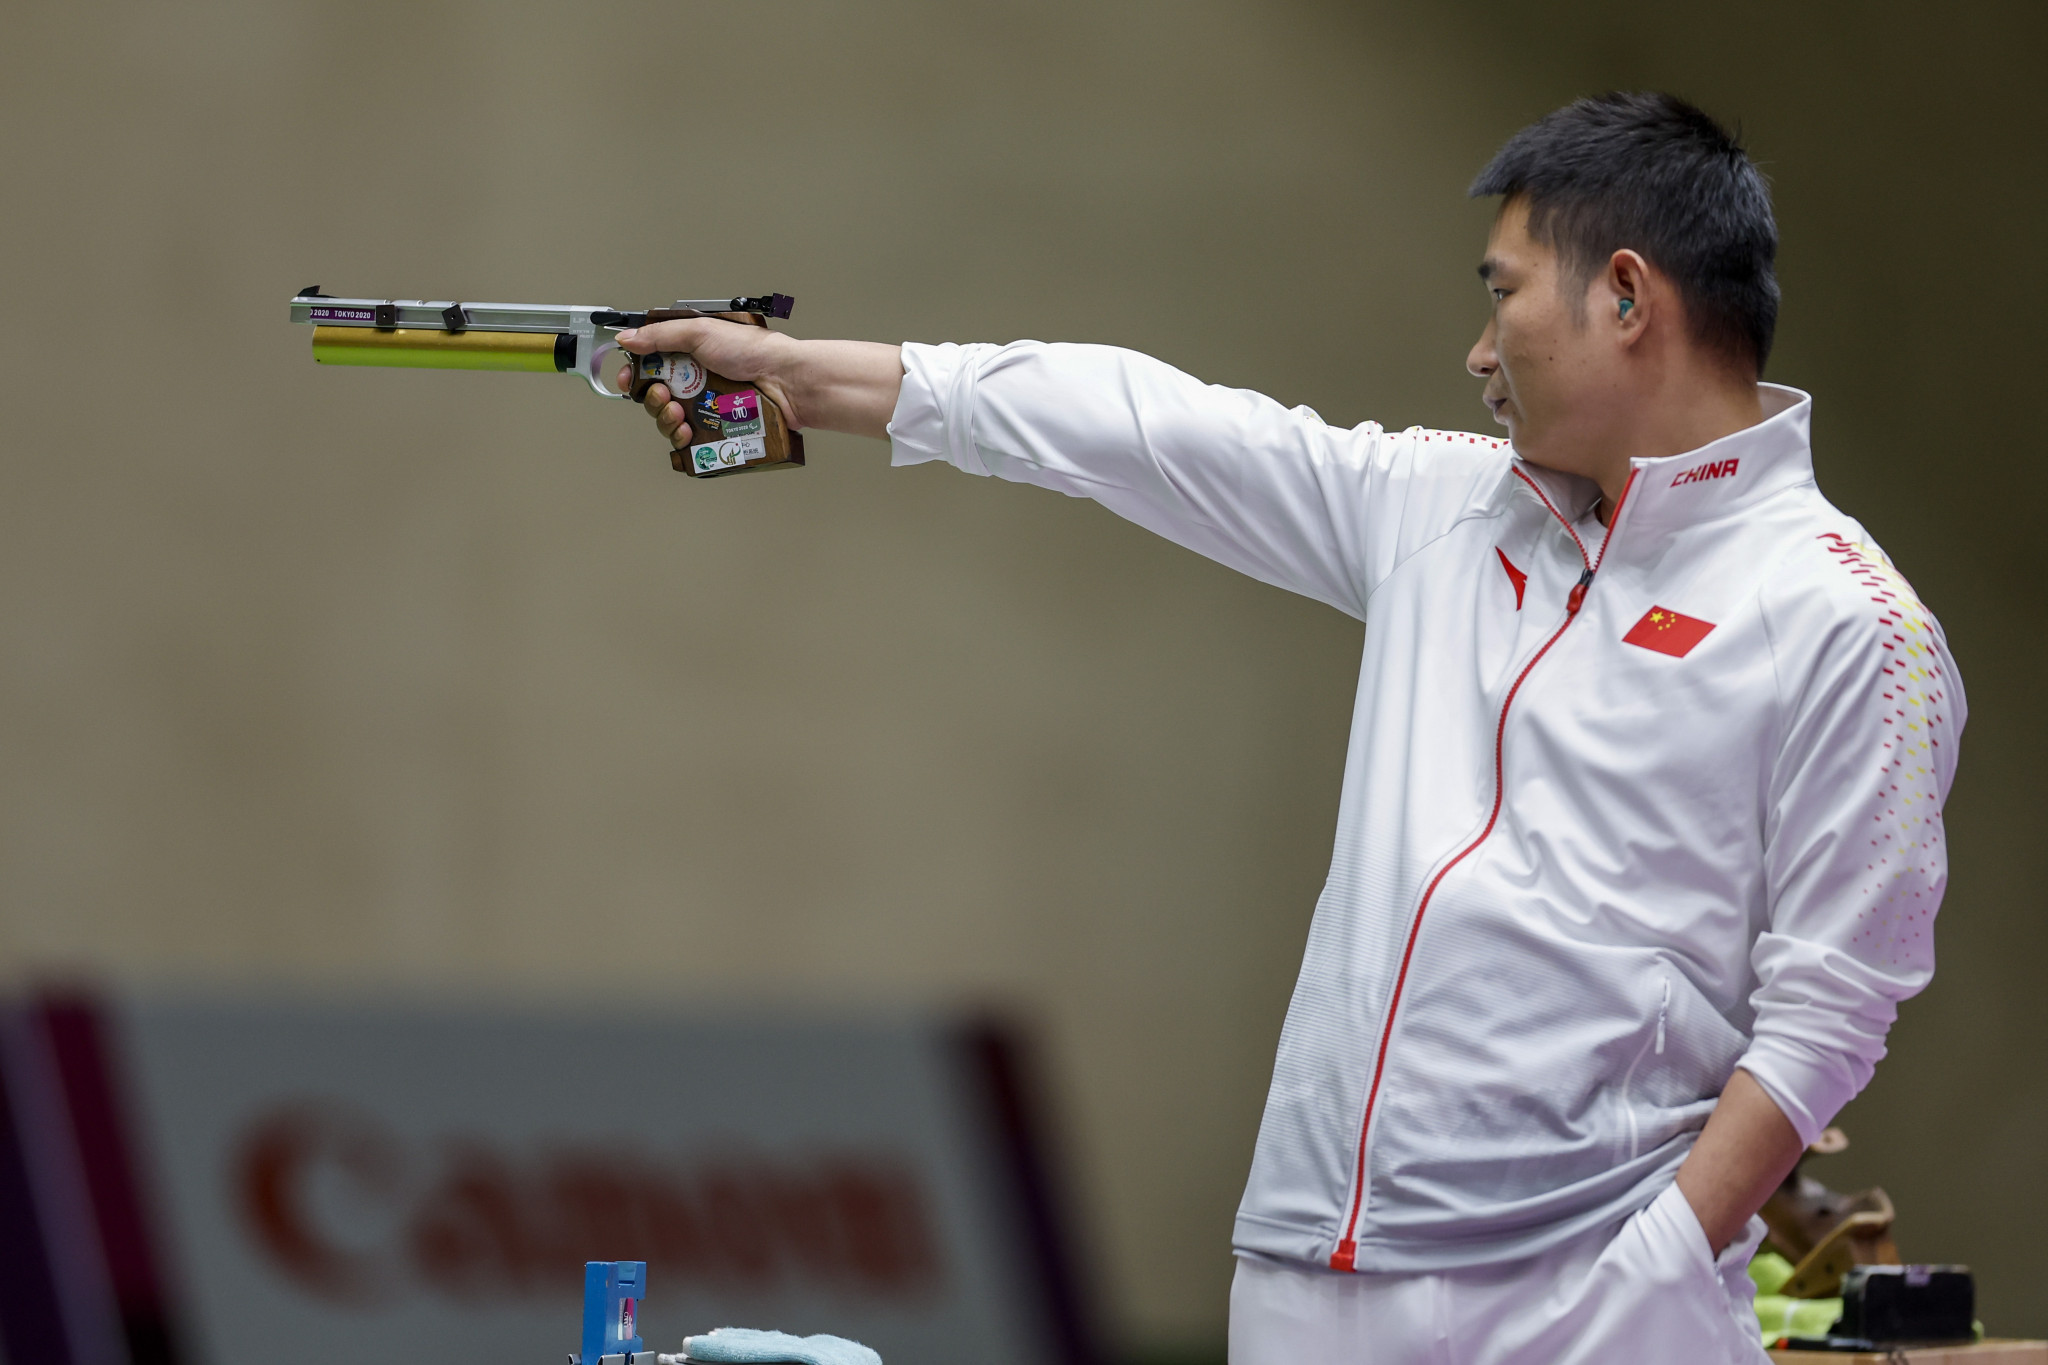 Huang bounces back to retain pistol gold with Paralympic record